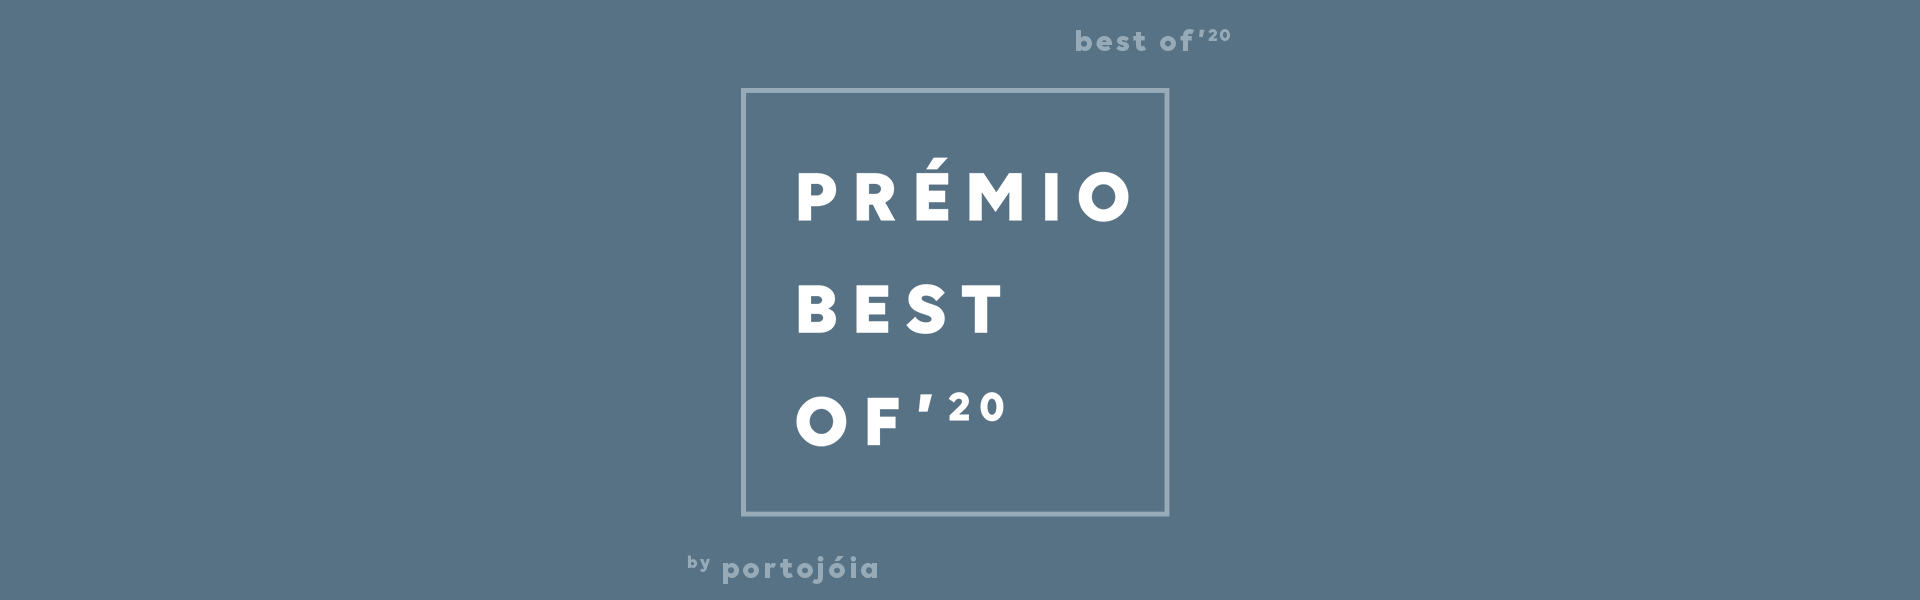 Prémio Best Of